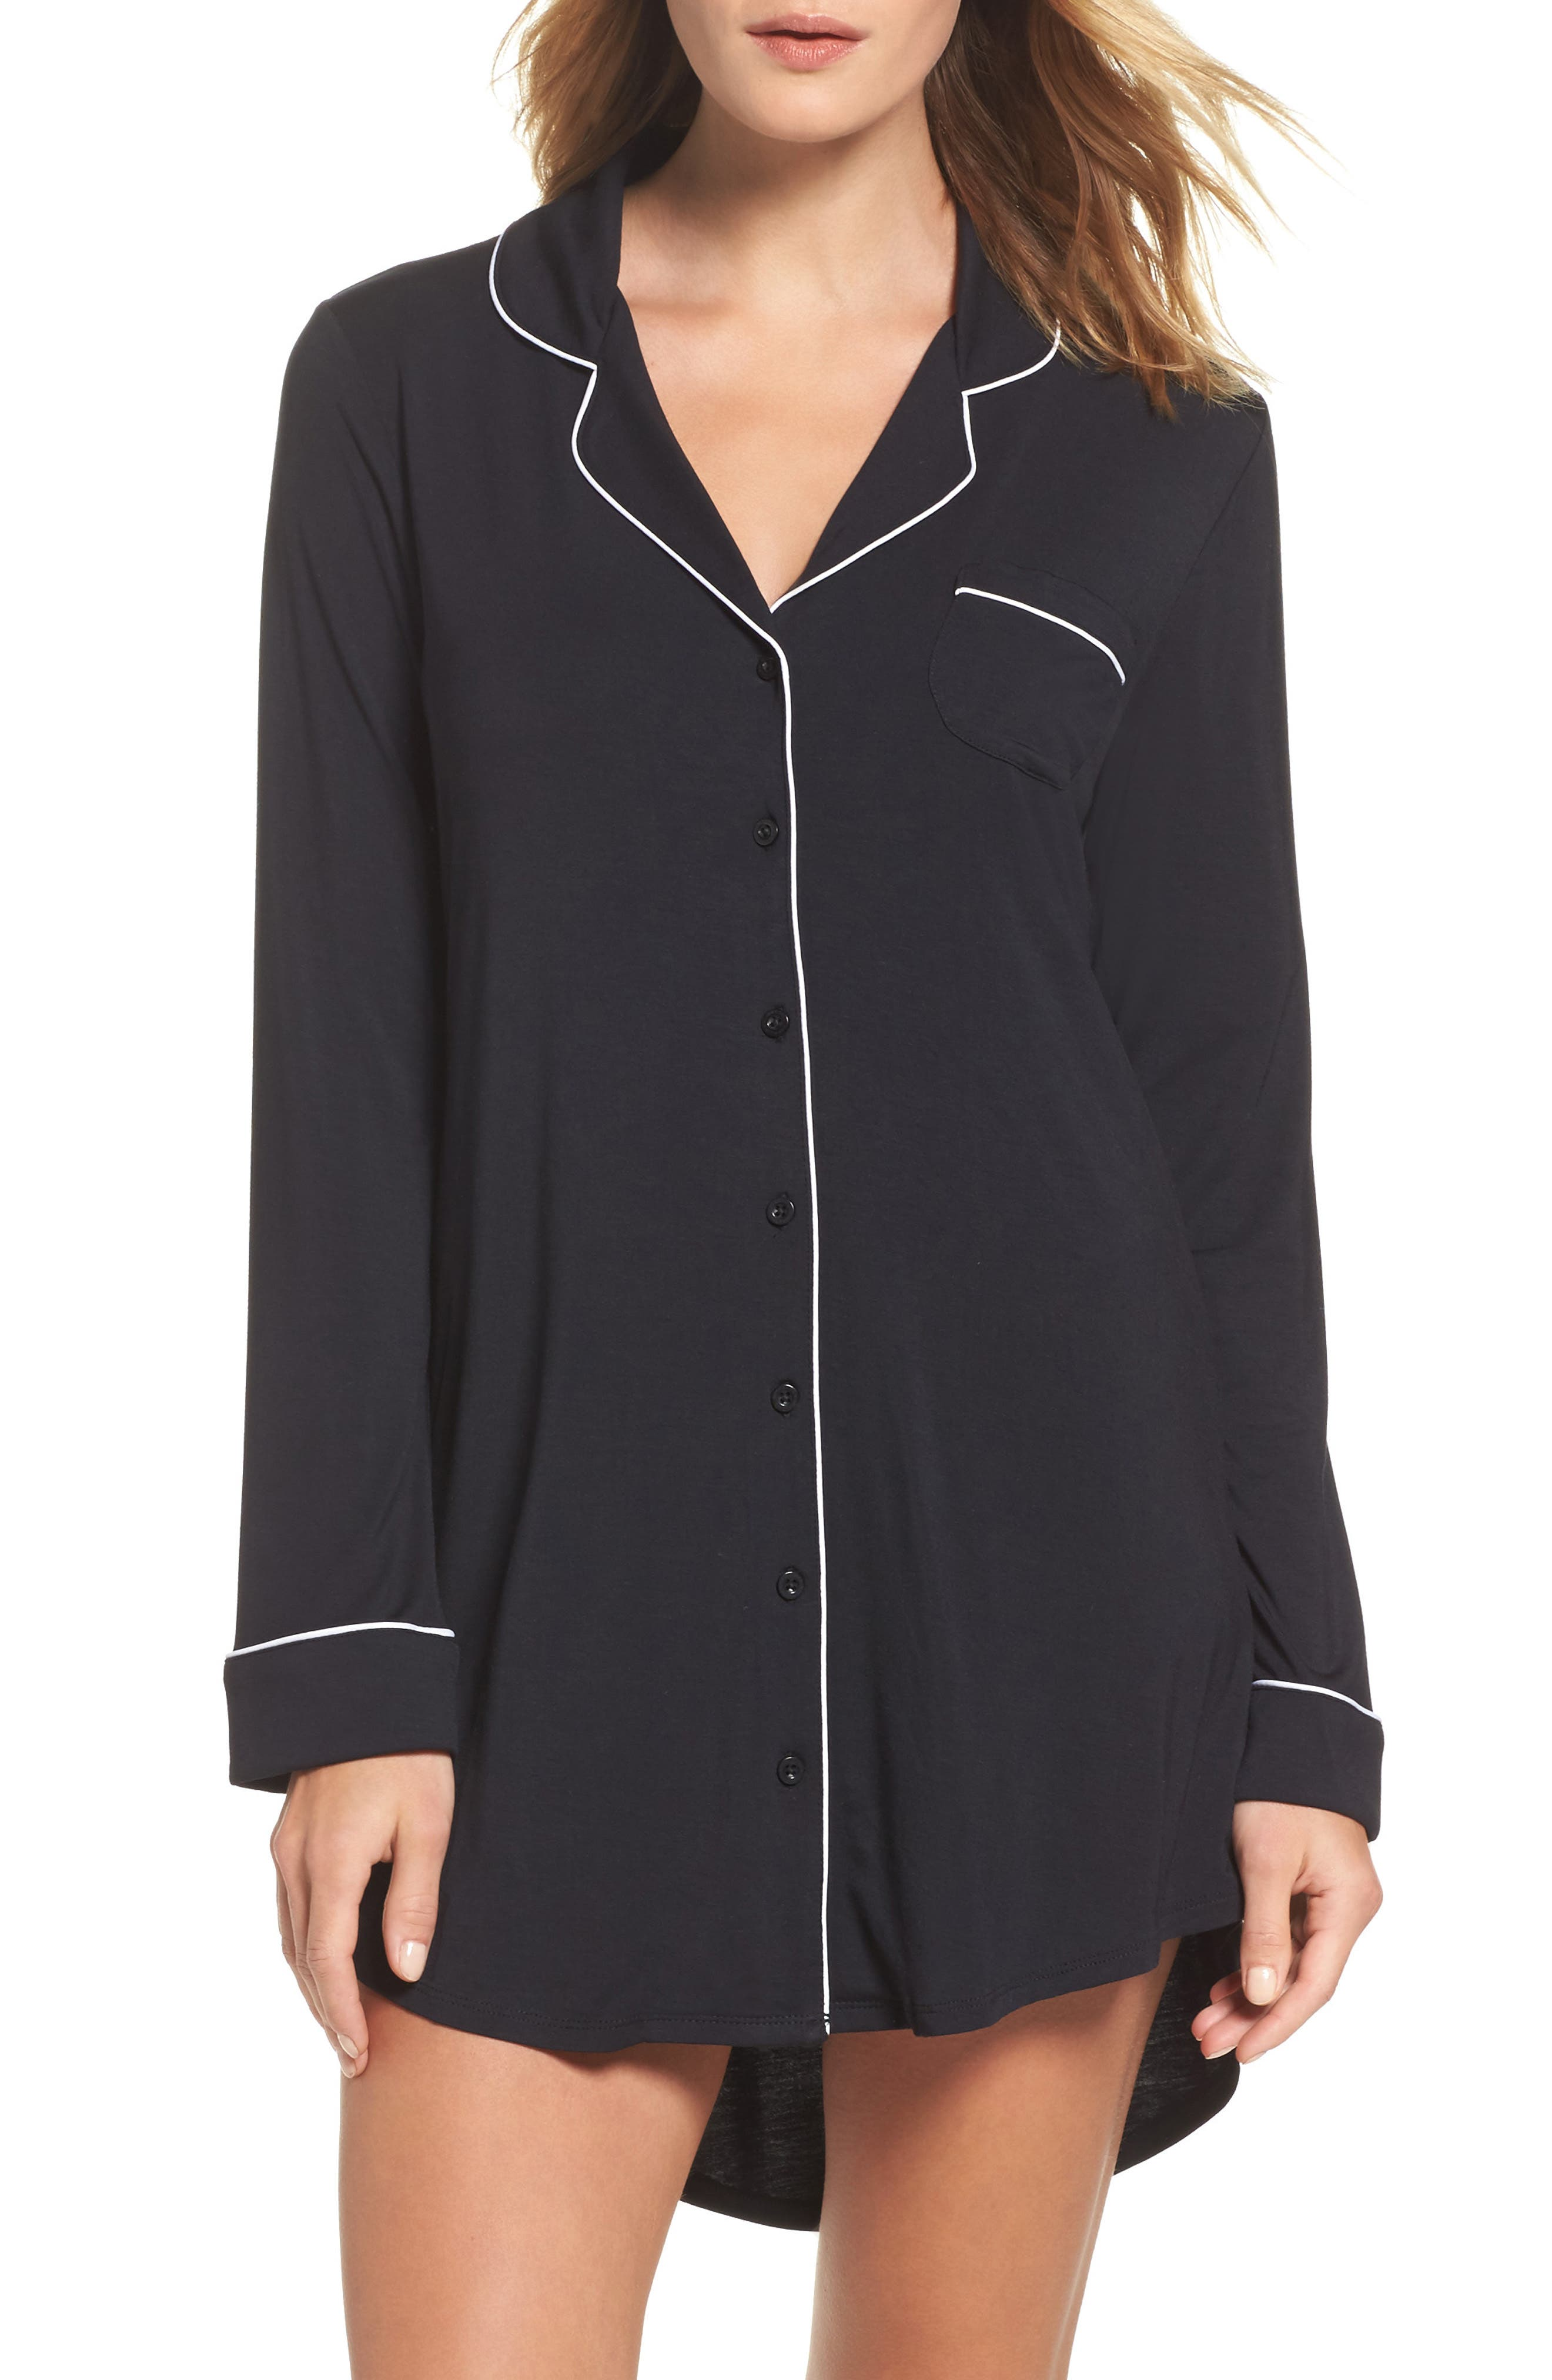 'Moonlight' Nightshirt,                             Main thumbnail 1, color,                             BLACK